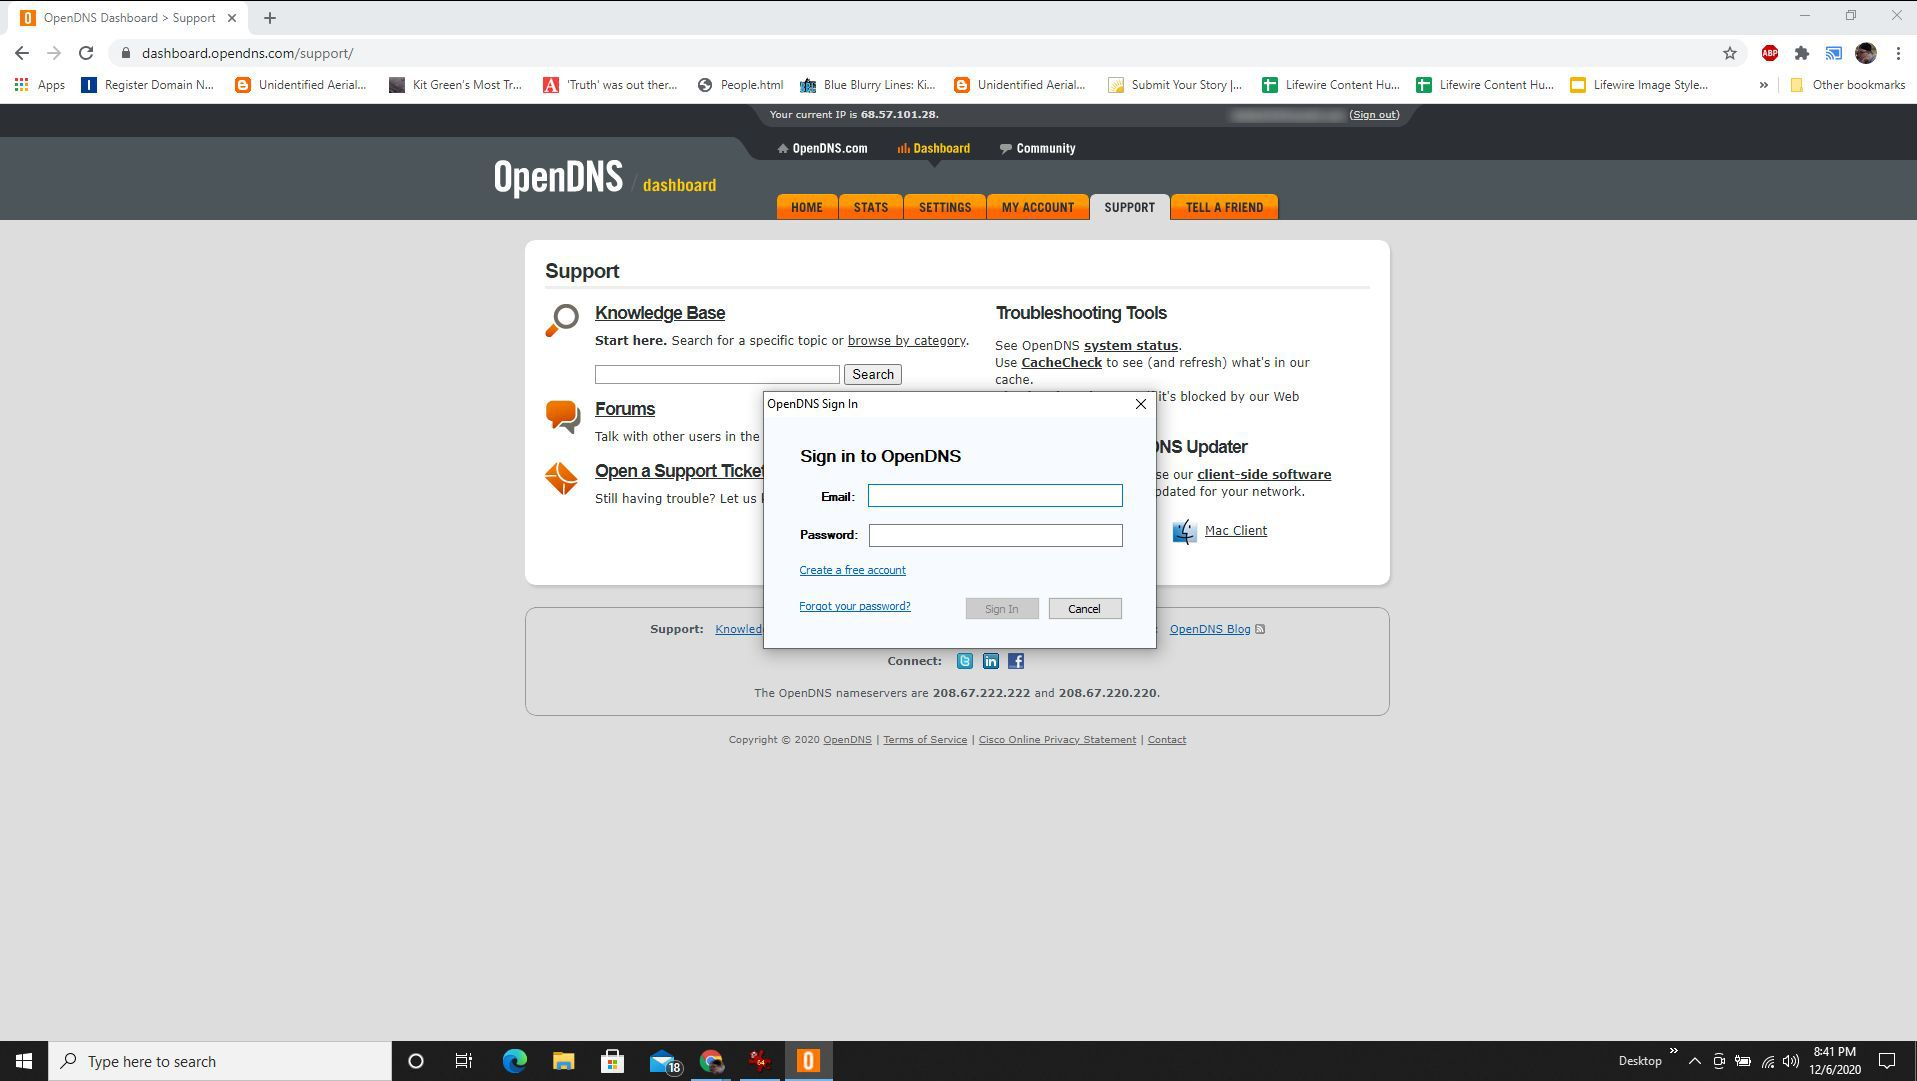 Screenshot of signing into OpenDNS account